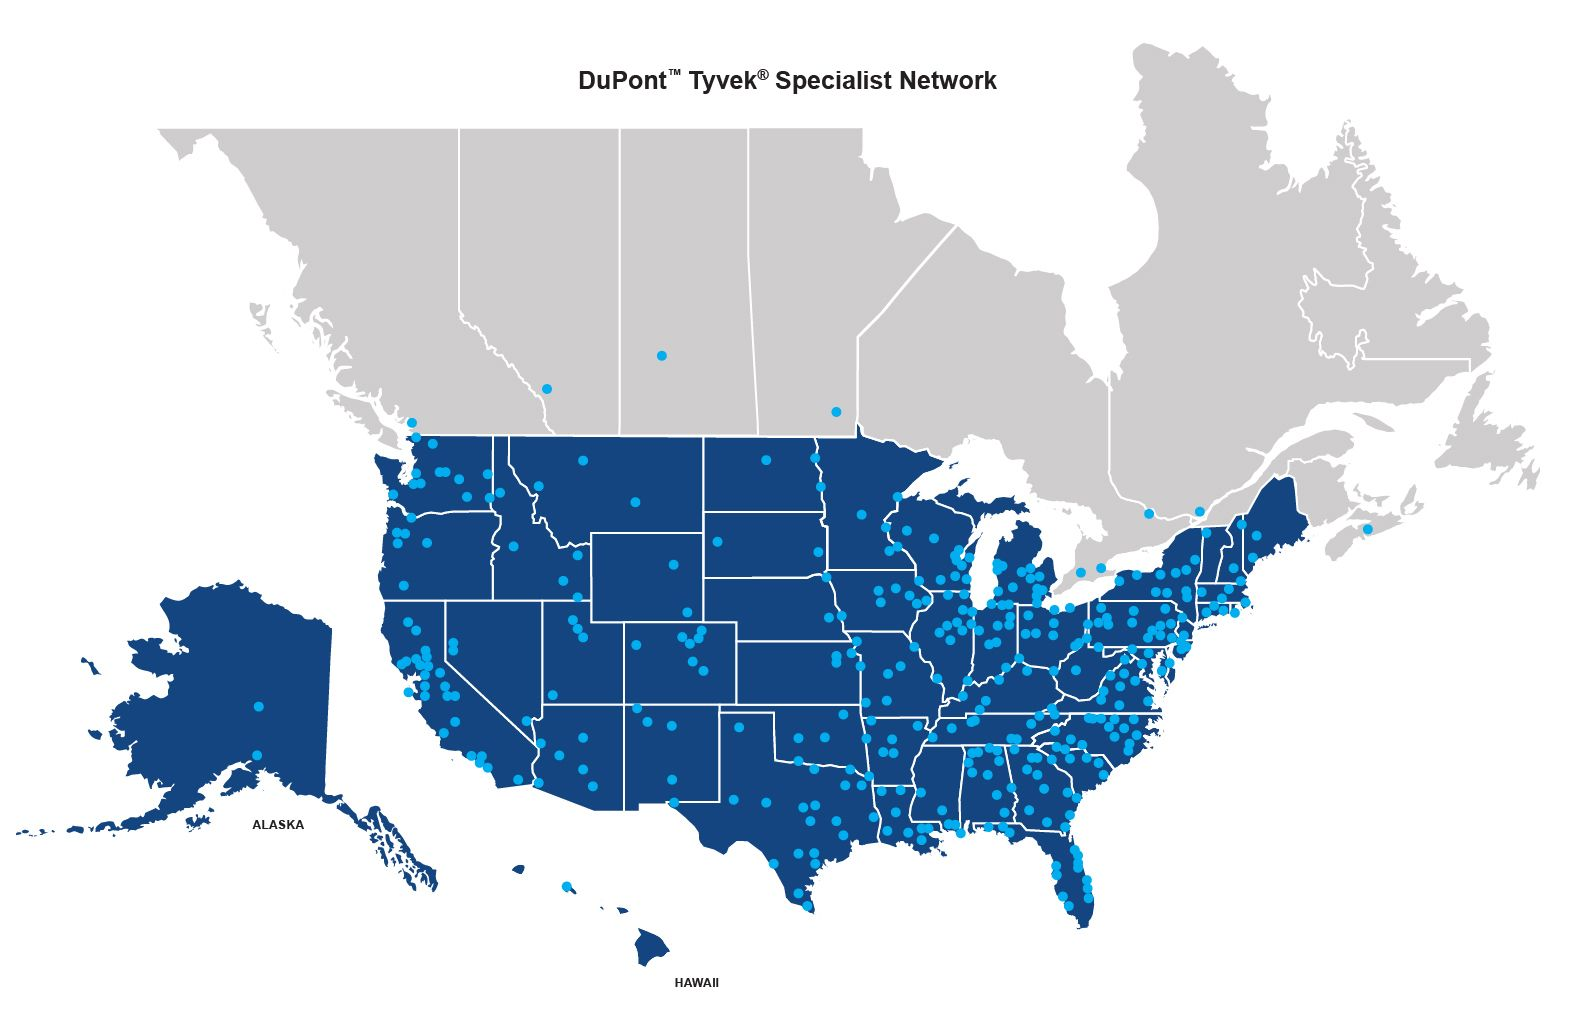 DuPont ™ Tyvek ® Specialist Map